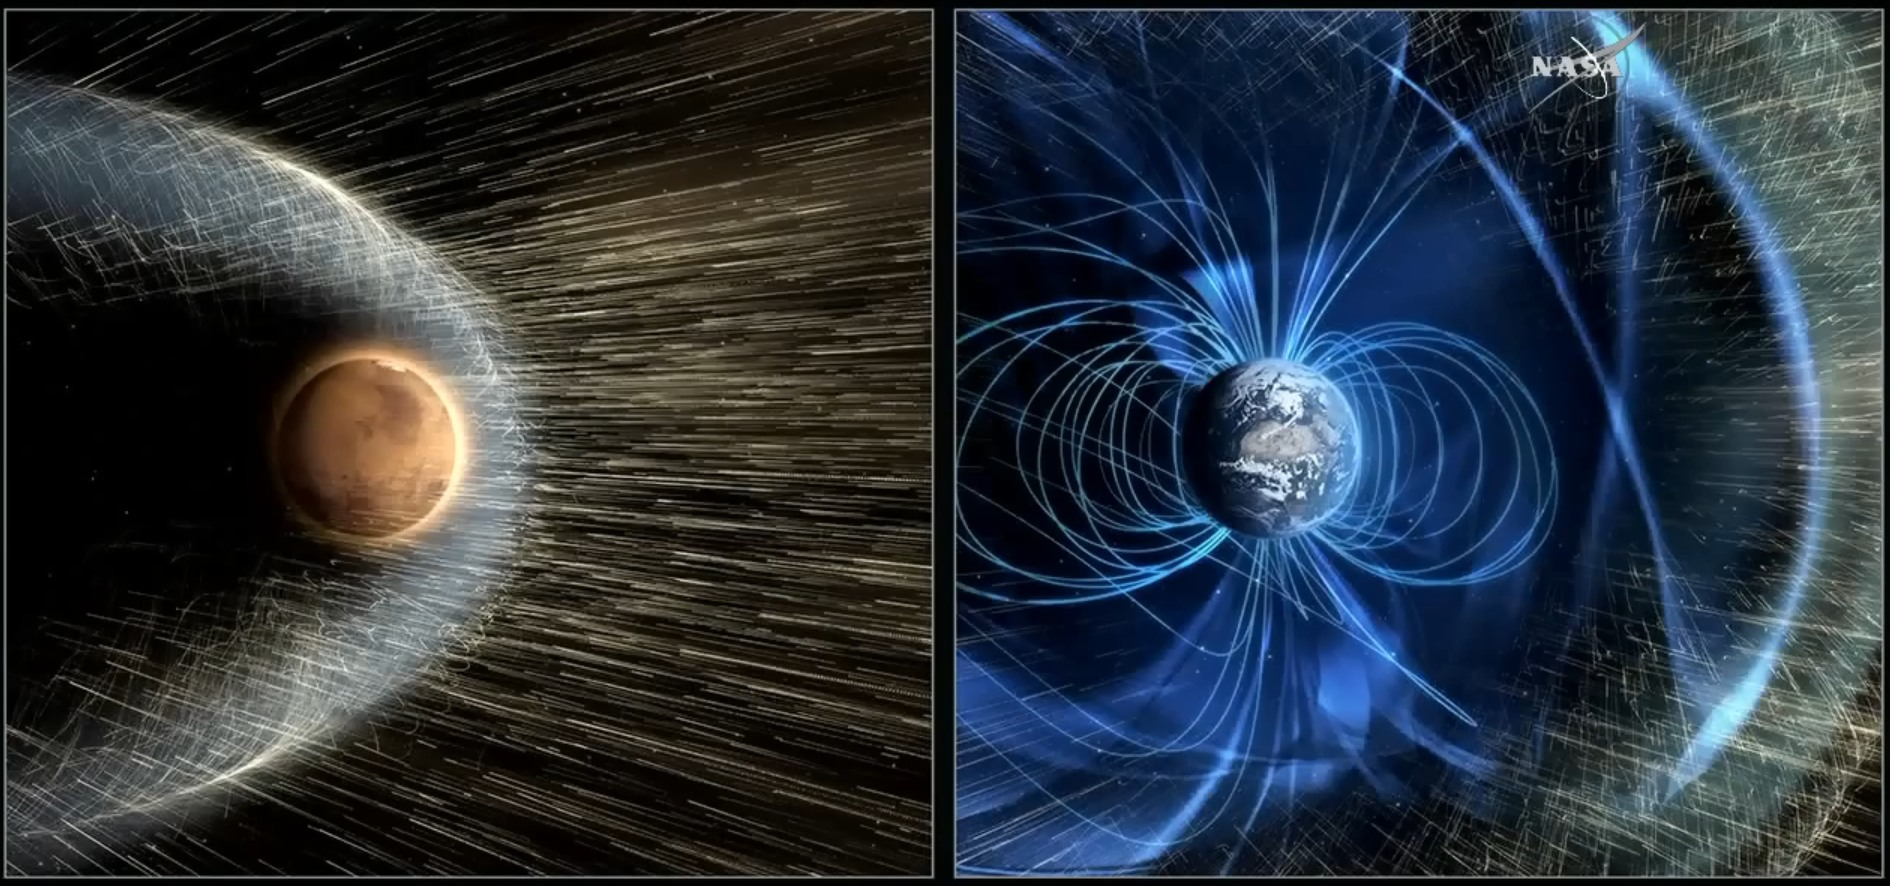 At one time, Mars had a magnetic field similar to Earth, which prevented its atmosphere from being stripped away. - Image Credit: NASA